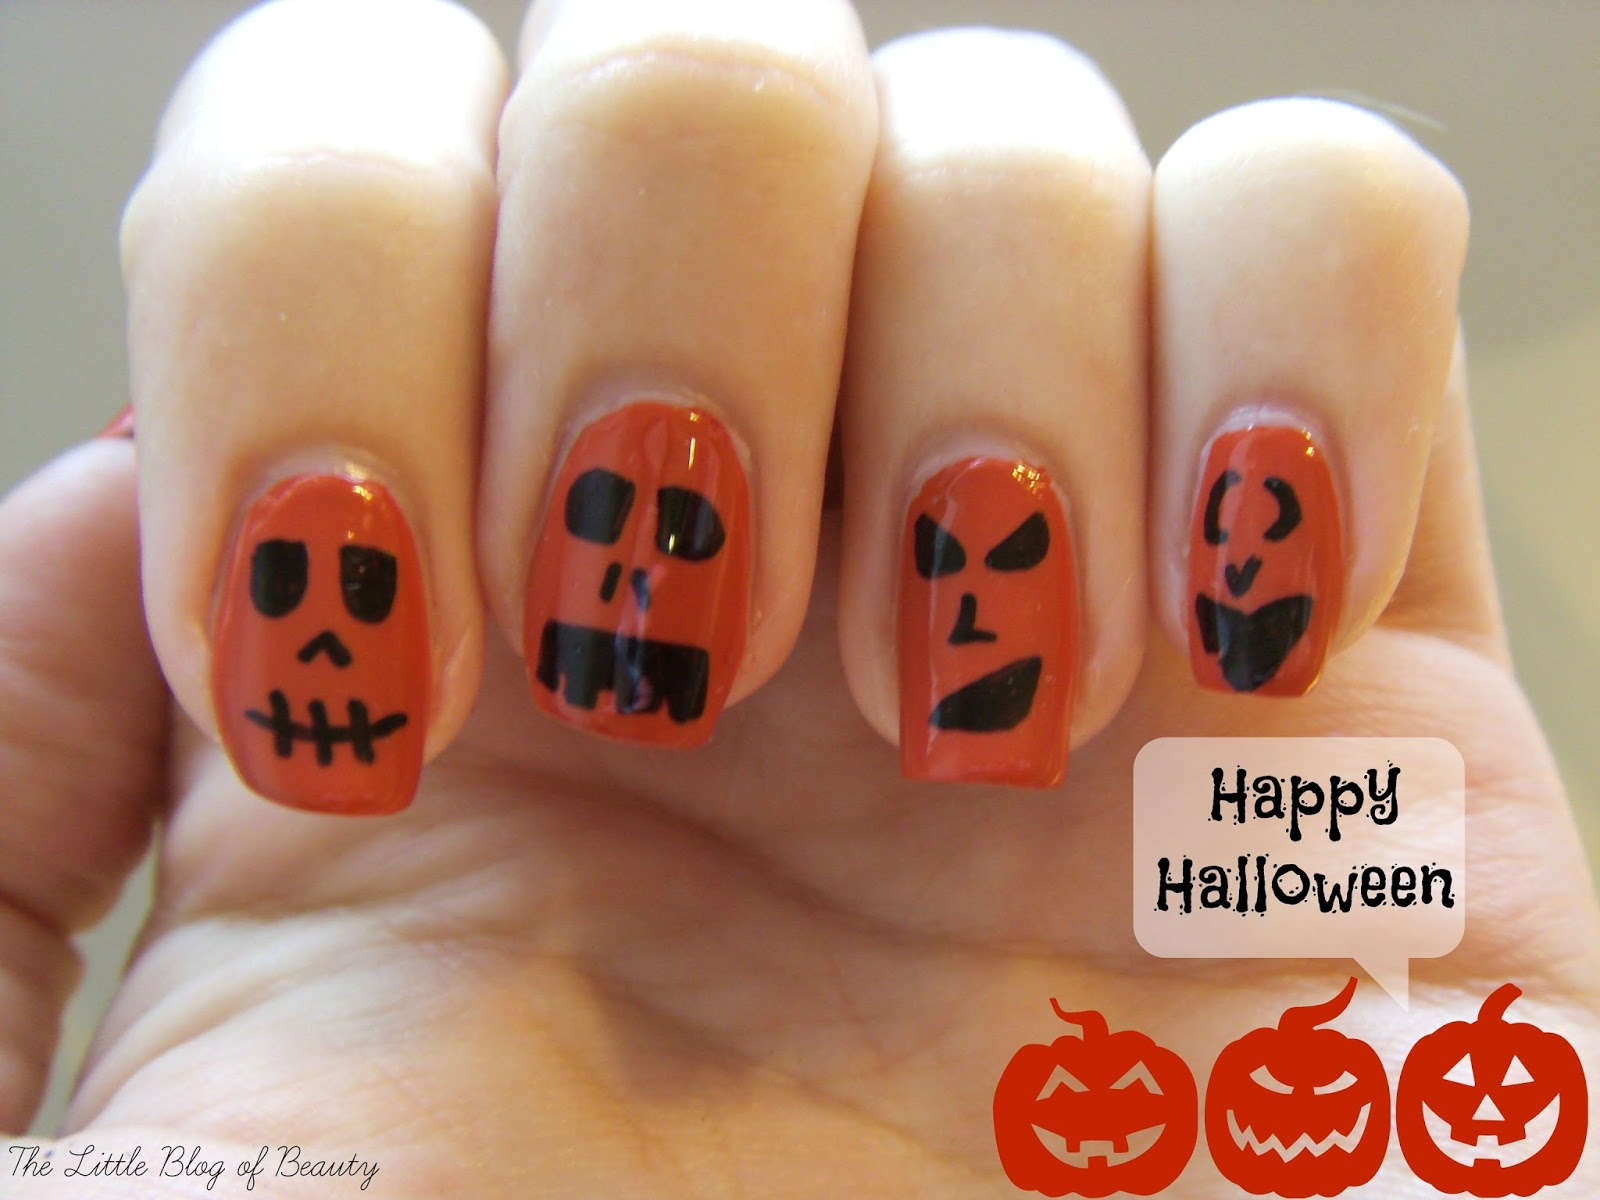 Halloween nail art - The creepy pumpkins